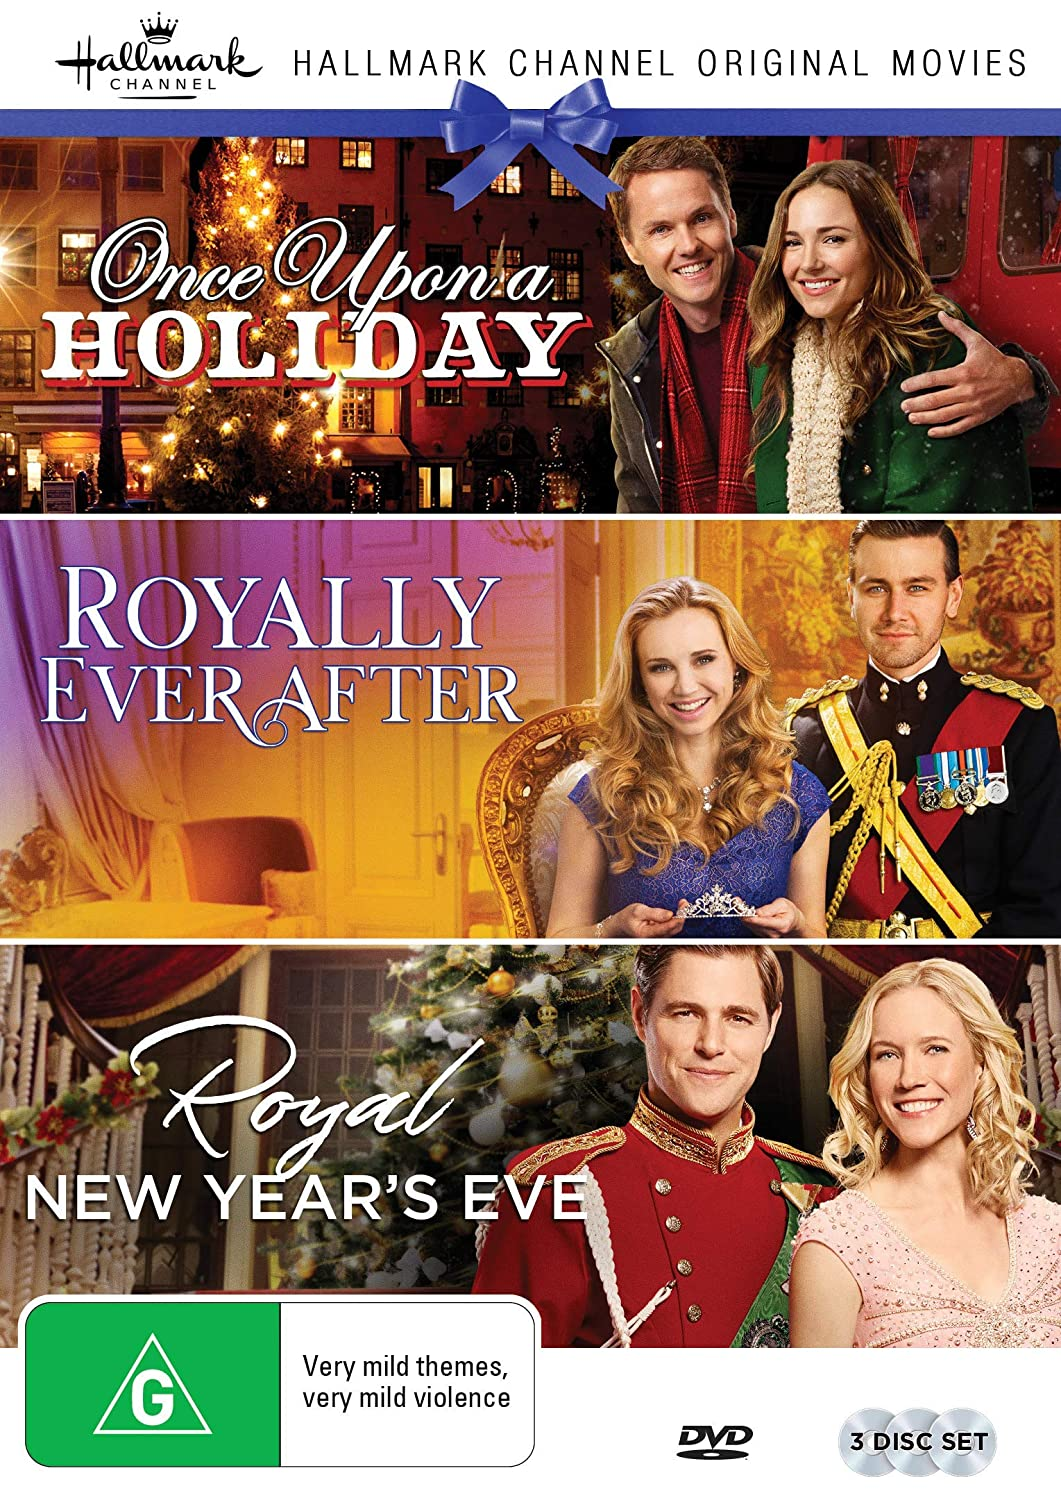 Hallmark Royal 3 Film Collection (Once Upon a Holiday/Royally Ever After/Royal New Years Eve) Briana Evigan Paul Campbell Fiona Gubelmann Sam Page